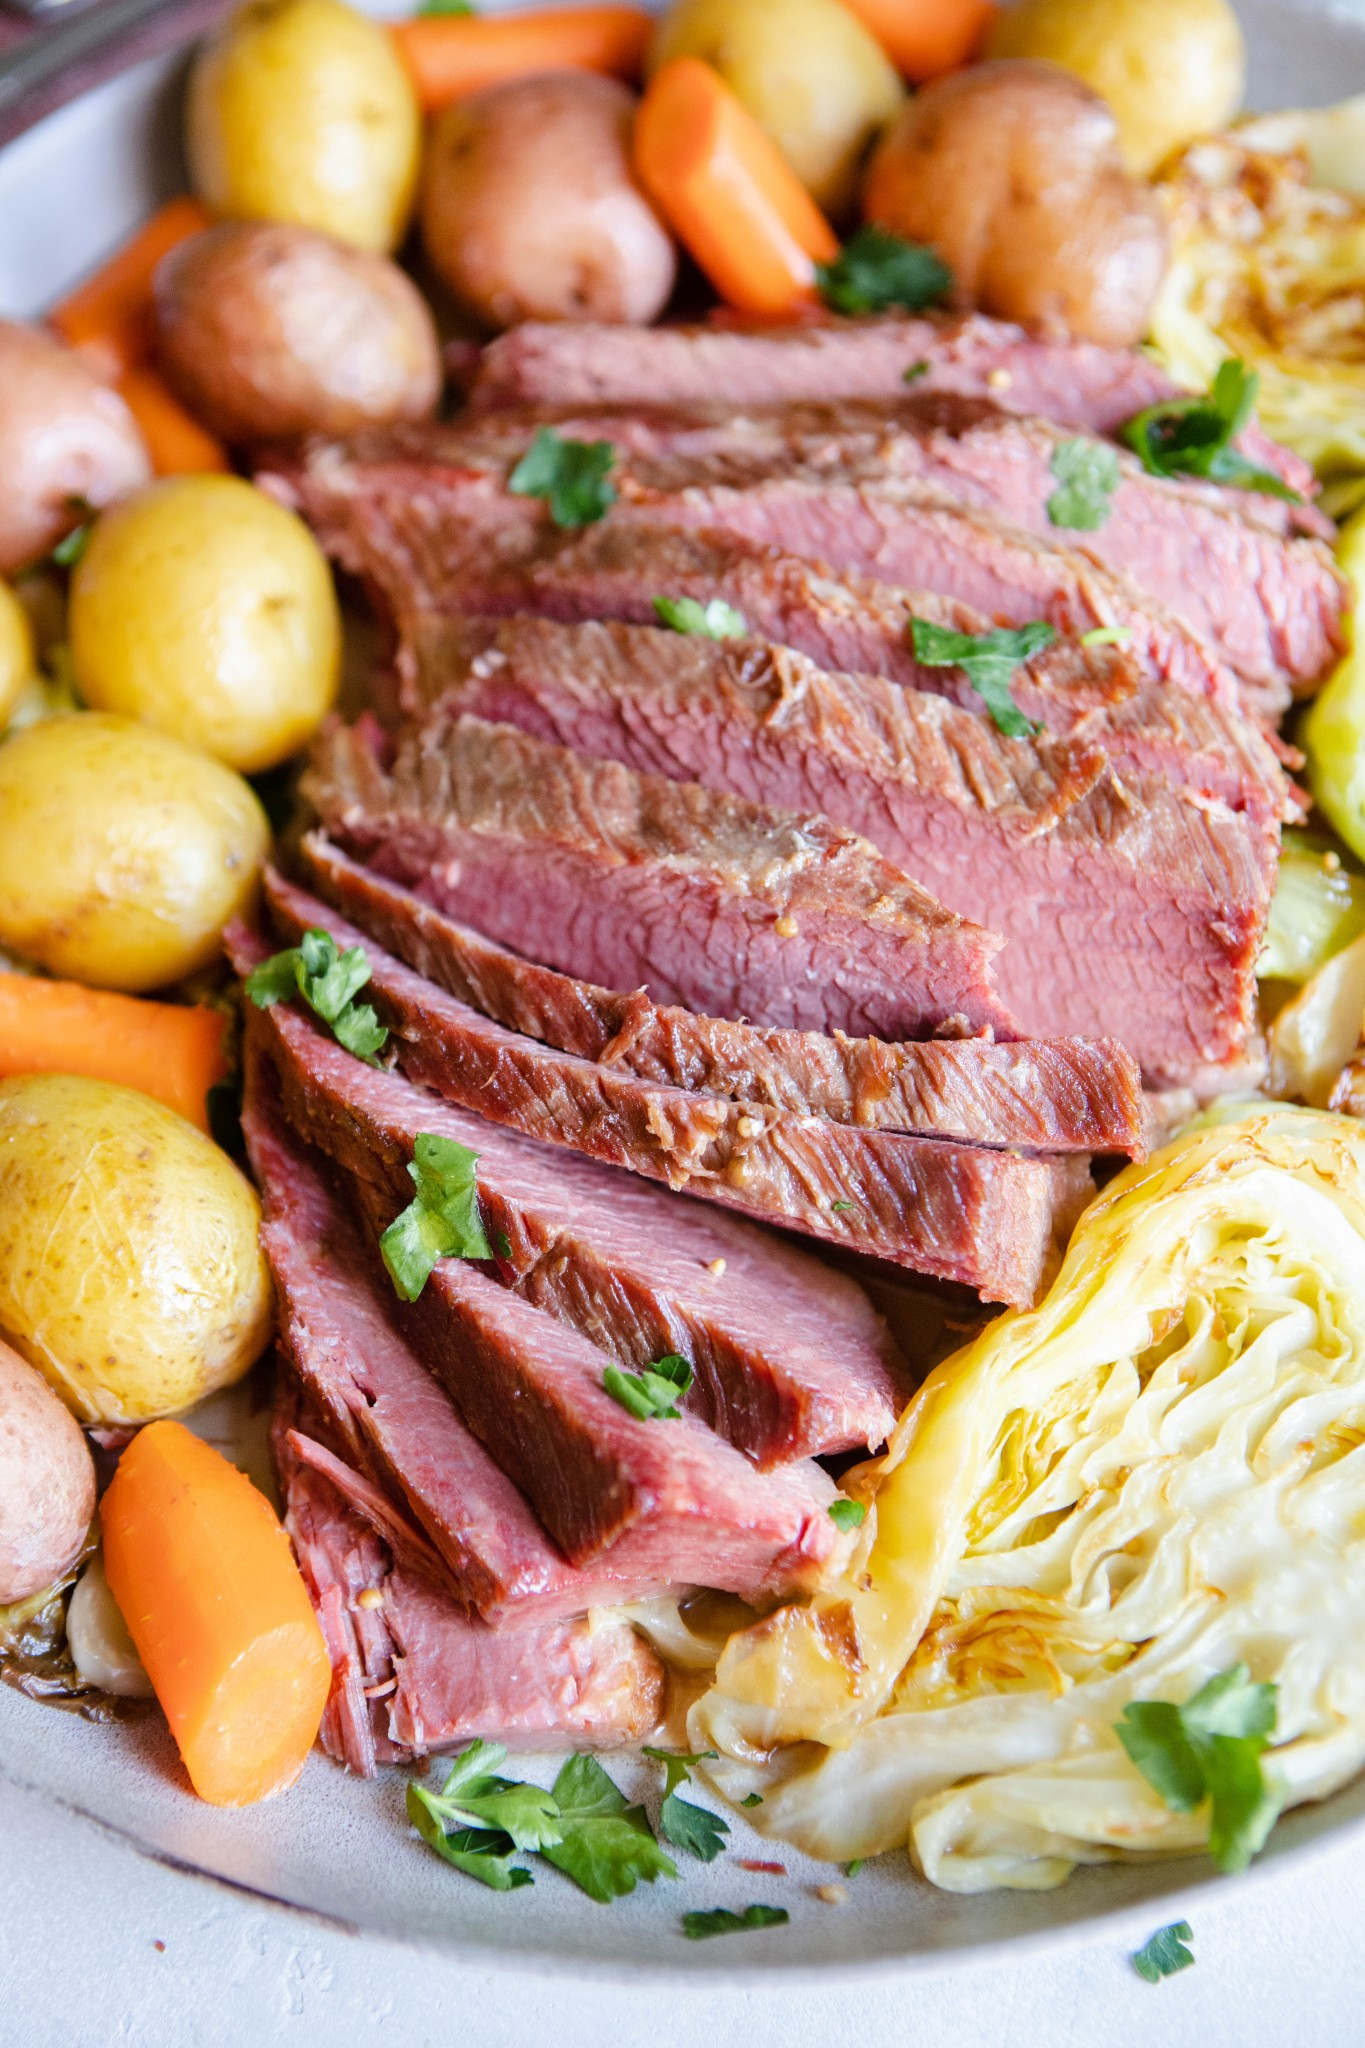 slices of homemade corned beef nestled in between potatoes, carrots and cabbage